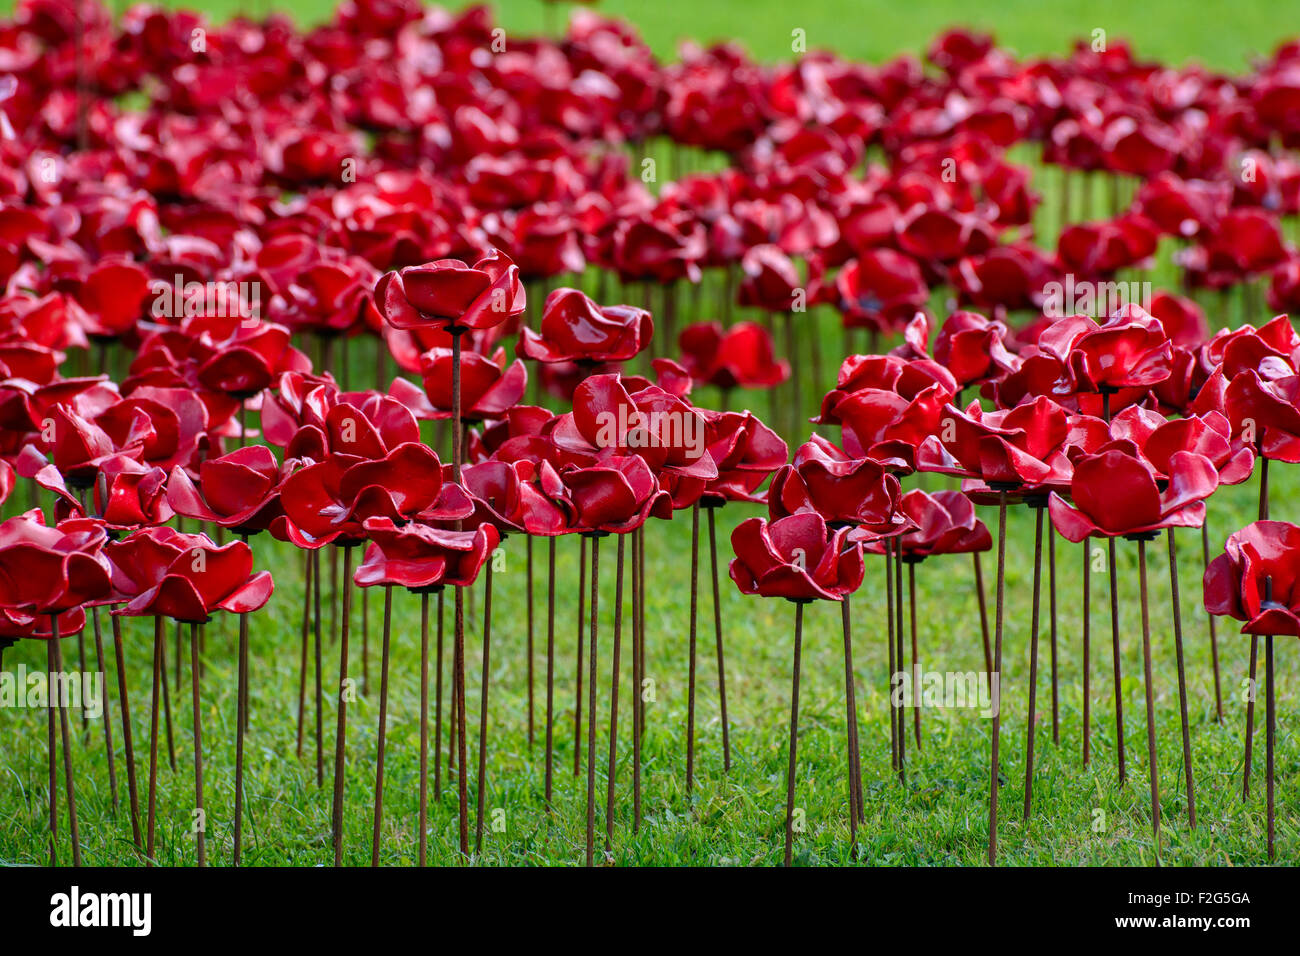 Weeping Window Poppies at Woodhorn - Stock Image